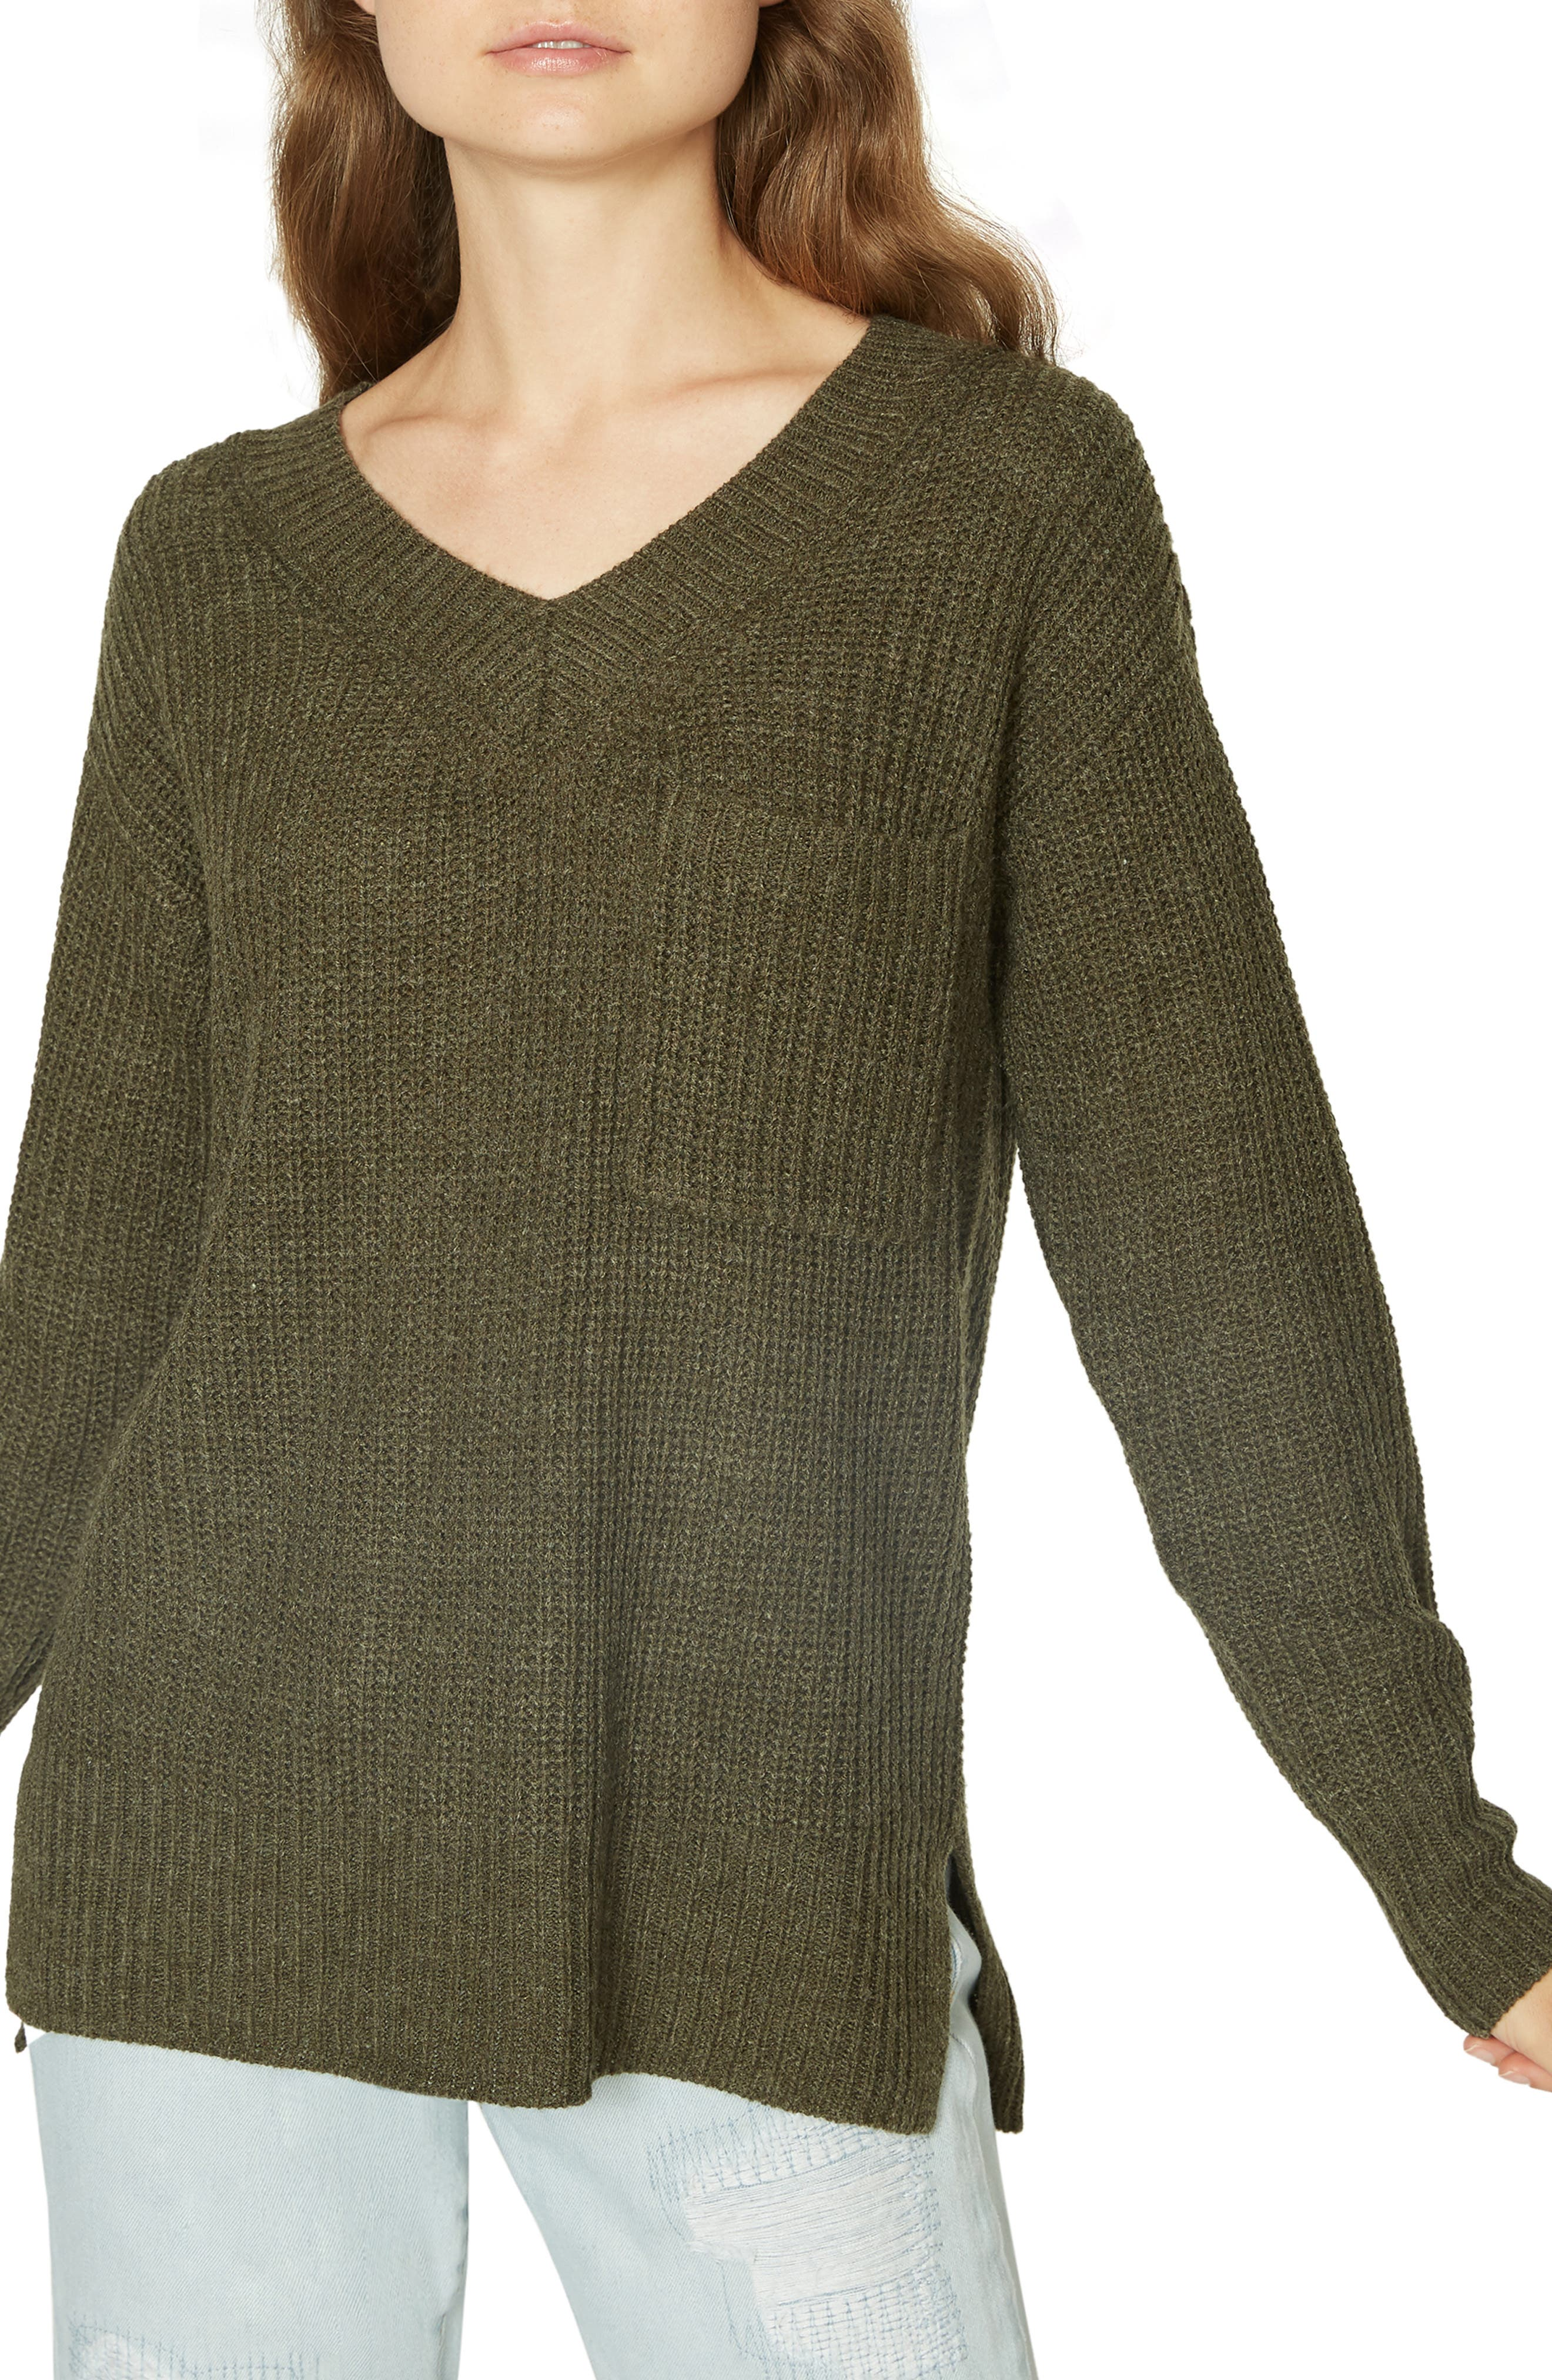 Amare Shaker Sweater by Sanctuary